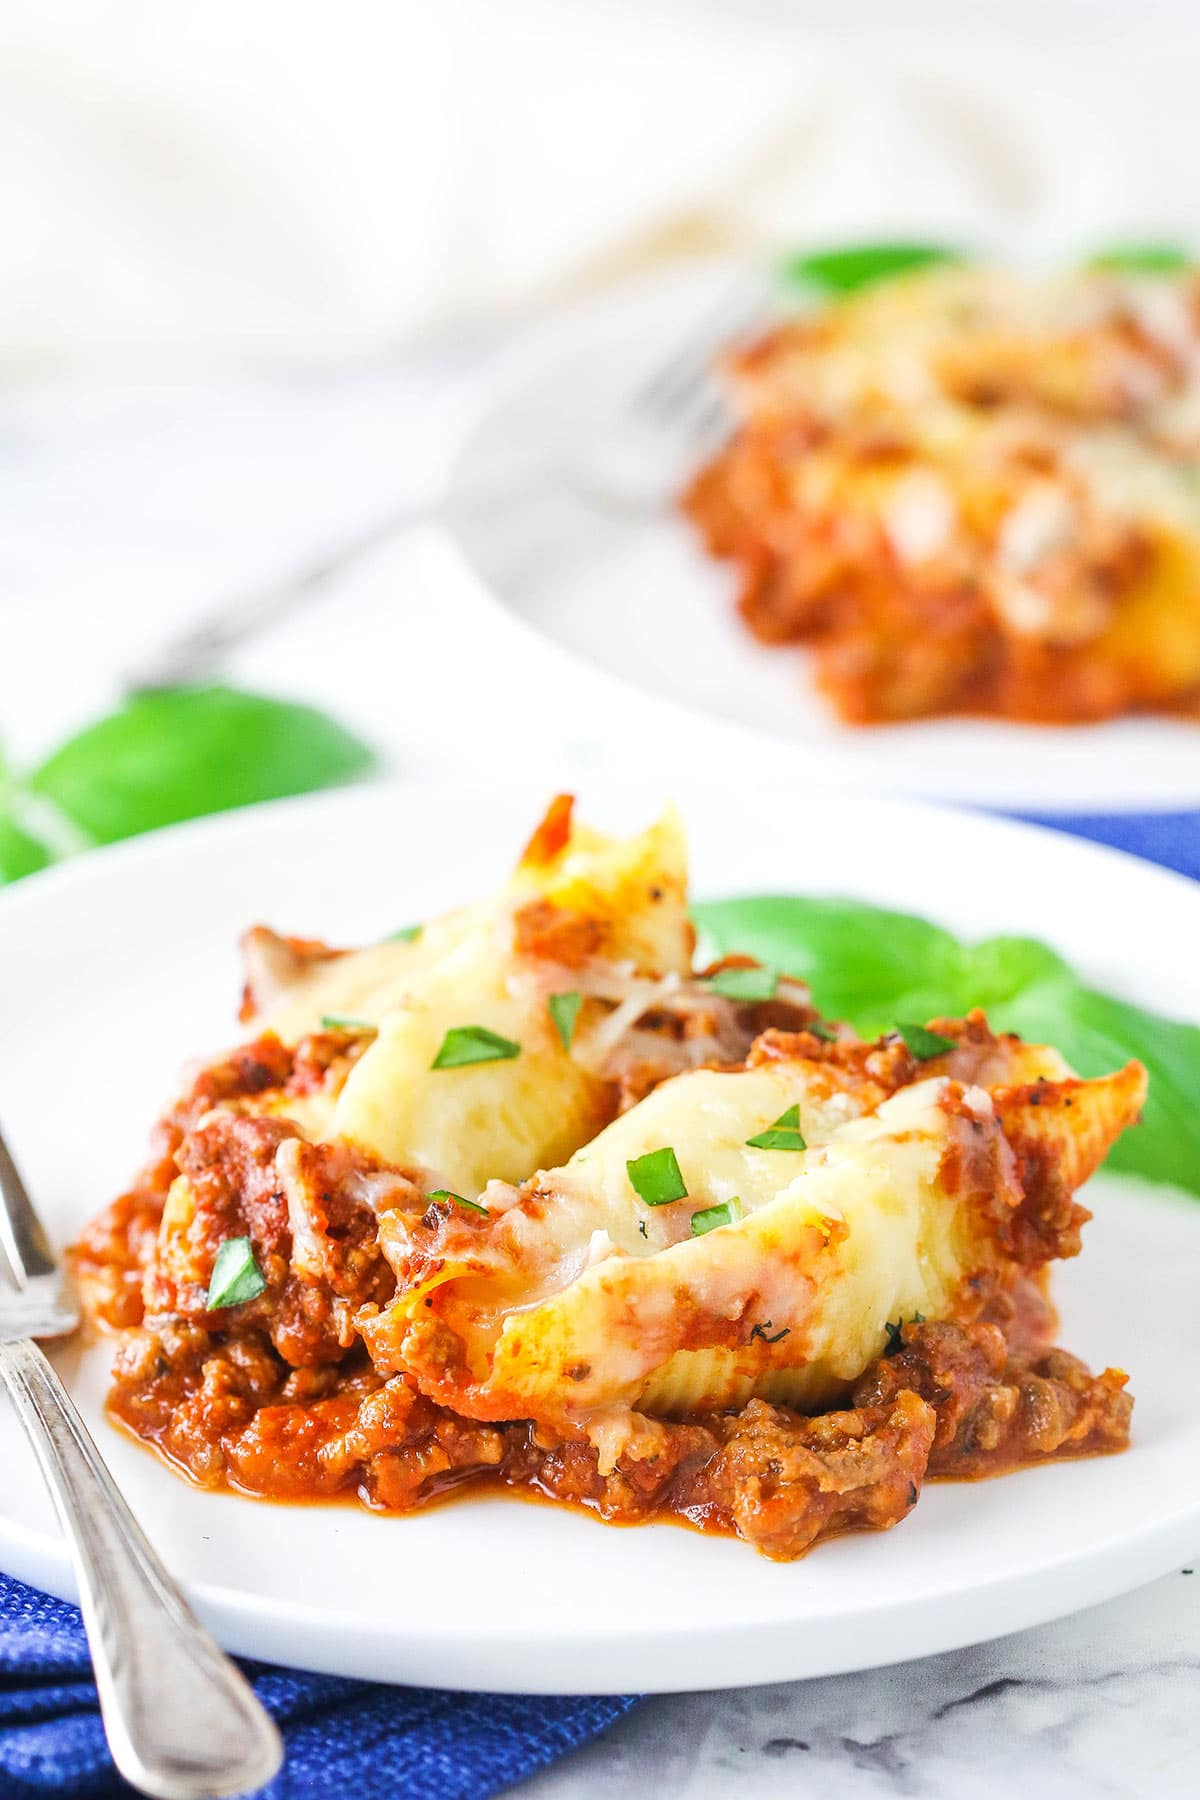 Ricotta stuffed shells with meat sauce on a white plate